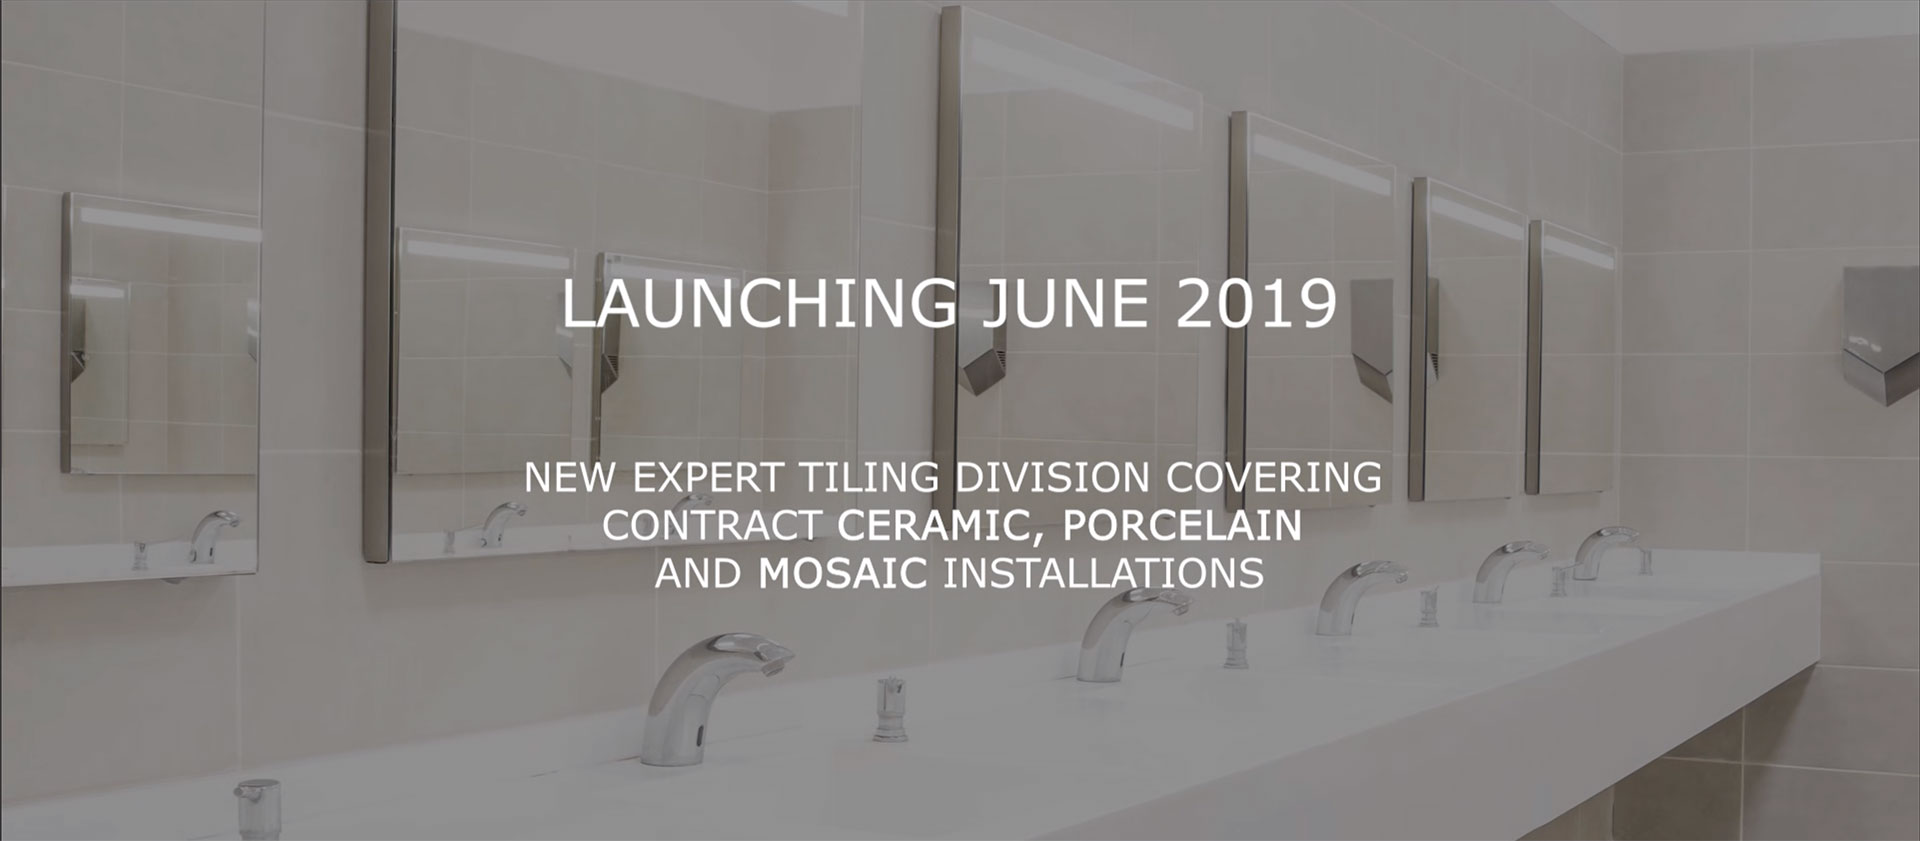 Launching June 2019. New Expert Tiling division covering contract ceramic, porcelain and mosaic installations.